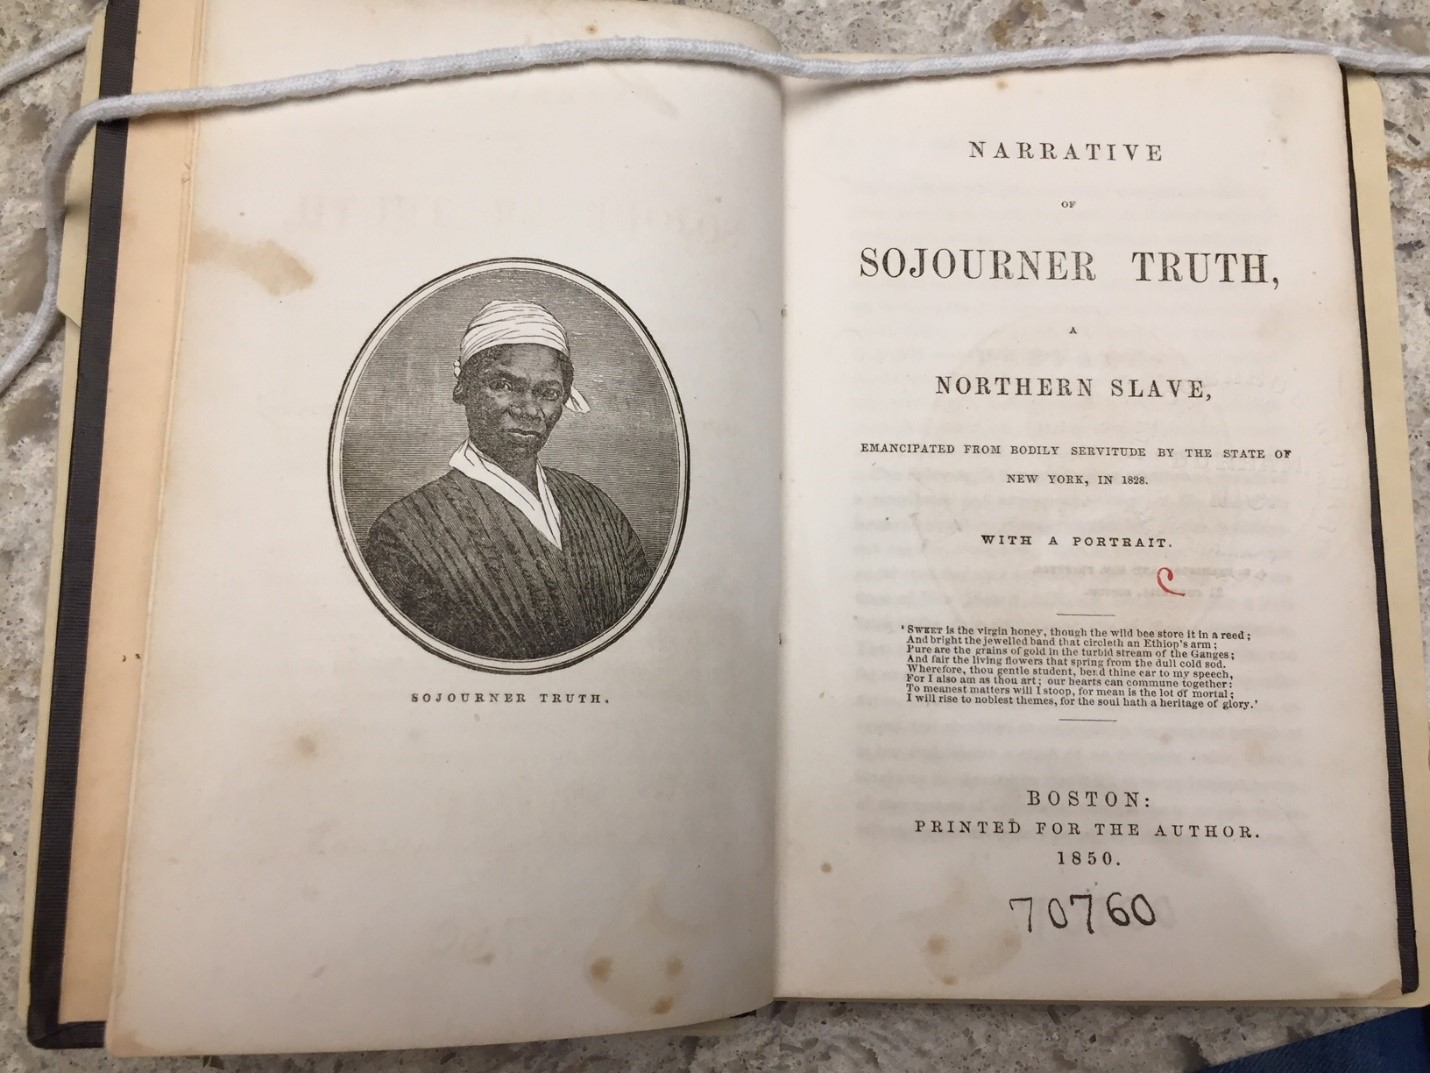 The Rubenstein's copy of The Narrative of Sojourner Truth (1850), opened to the title page and frontispiece with engraving of the author.